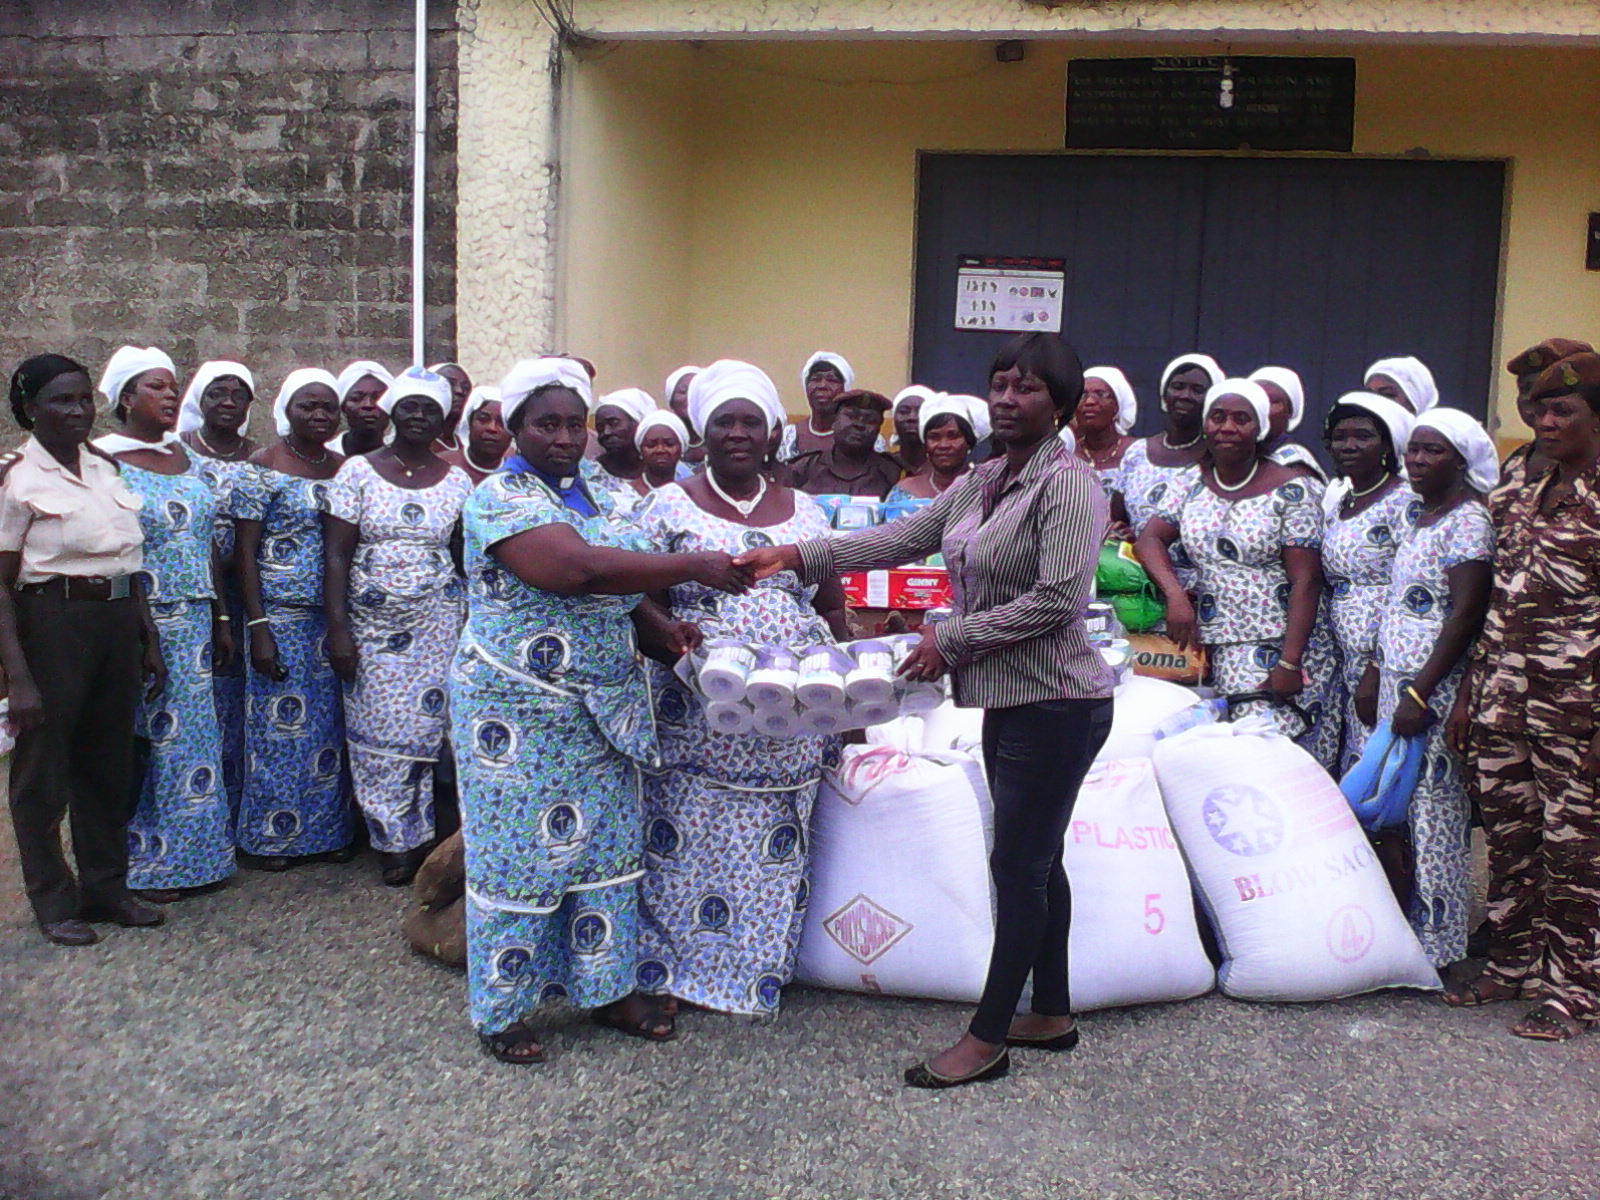 Rev. Edith Adoblosu-Kuhlor in clerical and Mrs Euphemia Gifty Agbavitor jointly presenting the items to ASP Judith Okyere while some members of the church and prison officers look on